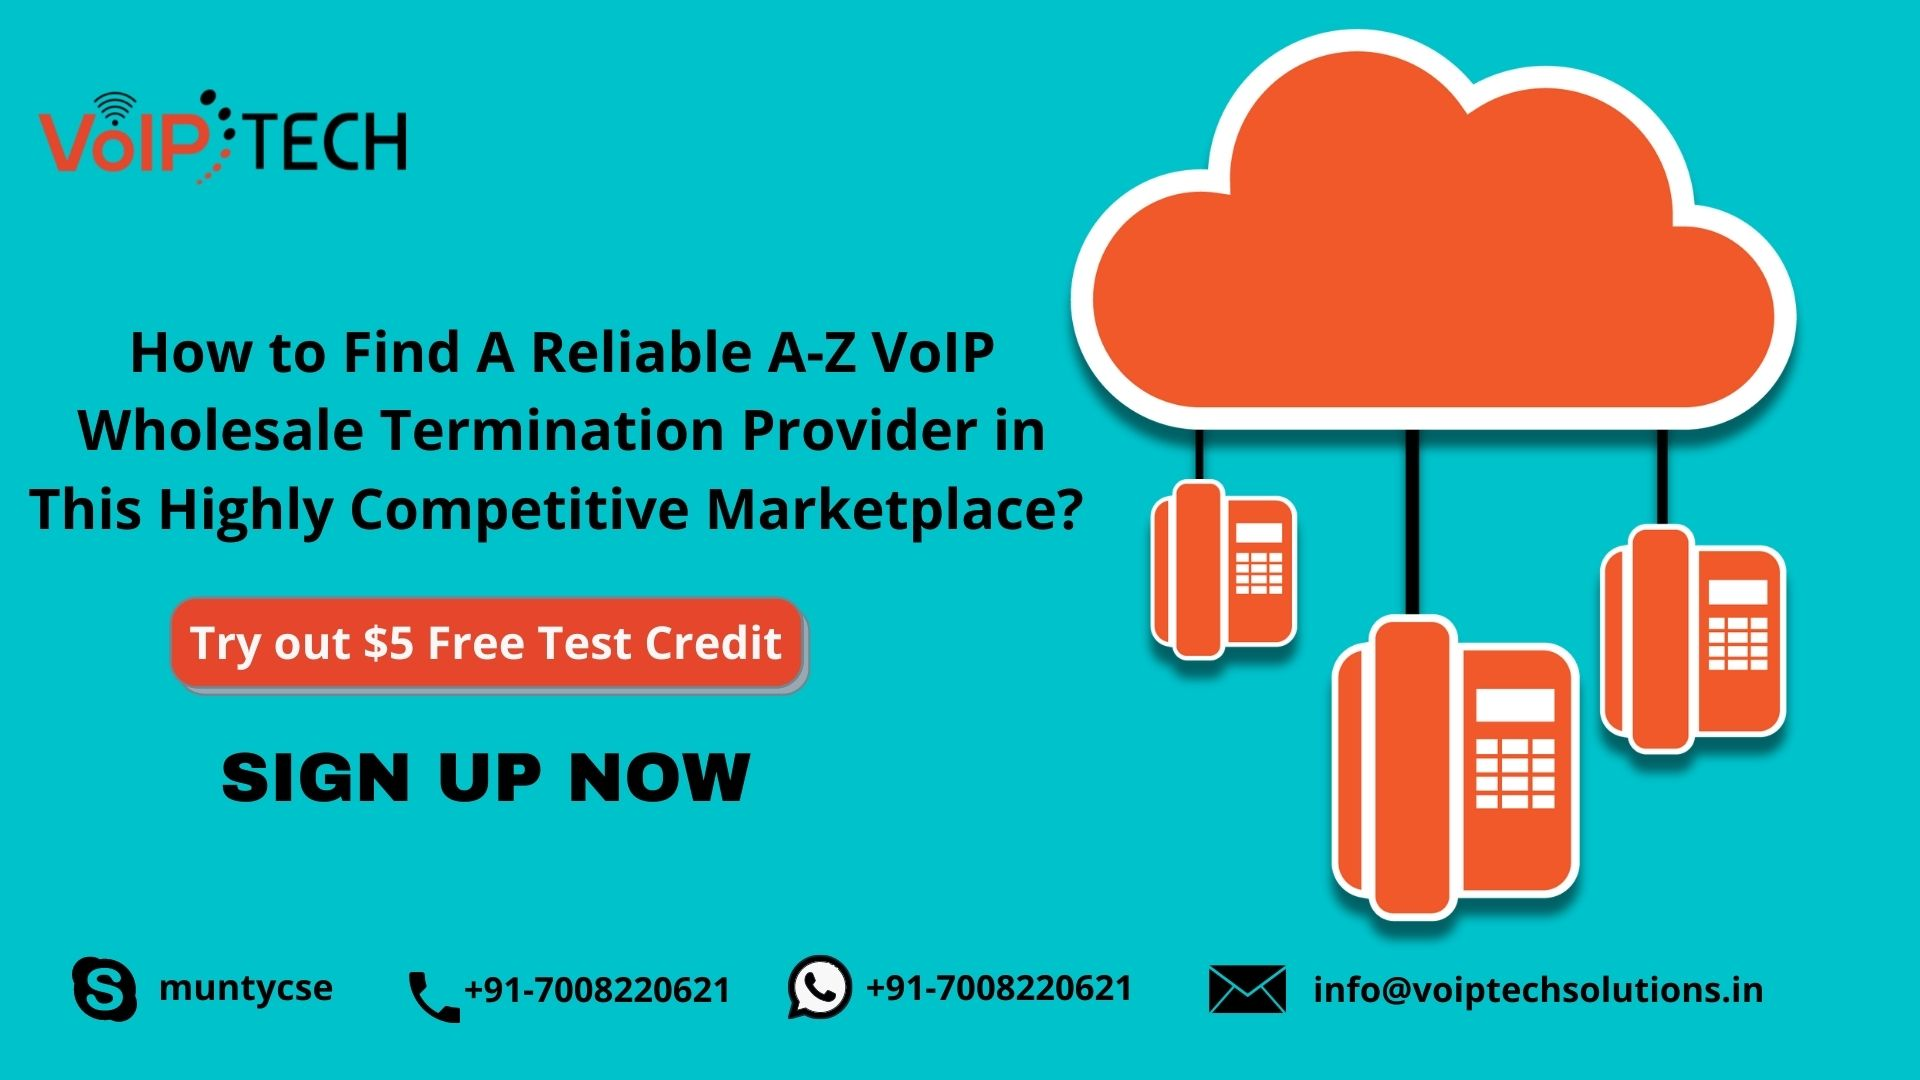 VoIP tech solutions, vici dialer, virtual number, Voip Providers, voip services in india, best sip provider, business voip providers, VoIP Phone Numbers, voip minutes provider, top voip providers, voip minutes, How to Find A Reliable A-Z VoIP Wholesale Termination Provider in This Highly Competitive Marketplace?, A-Z VoIP Termination Provider, International VoIP Provider